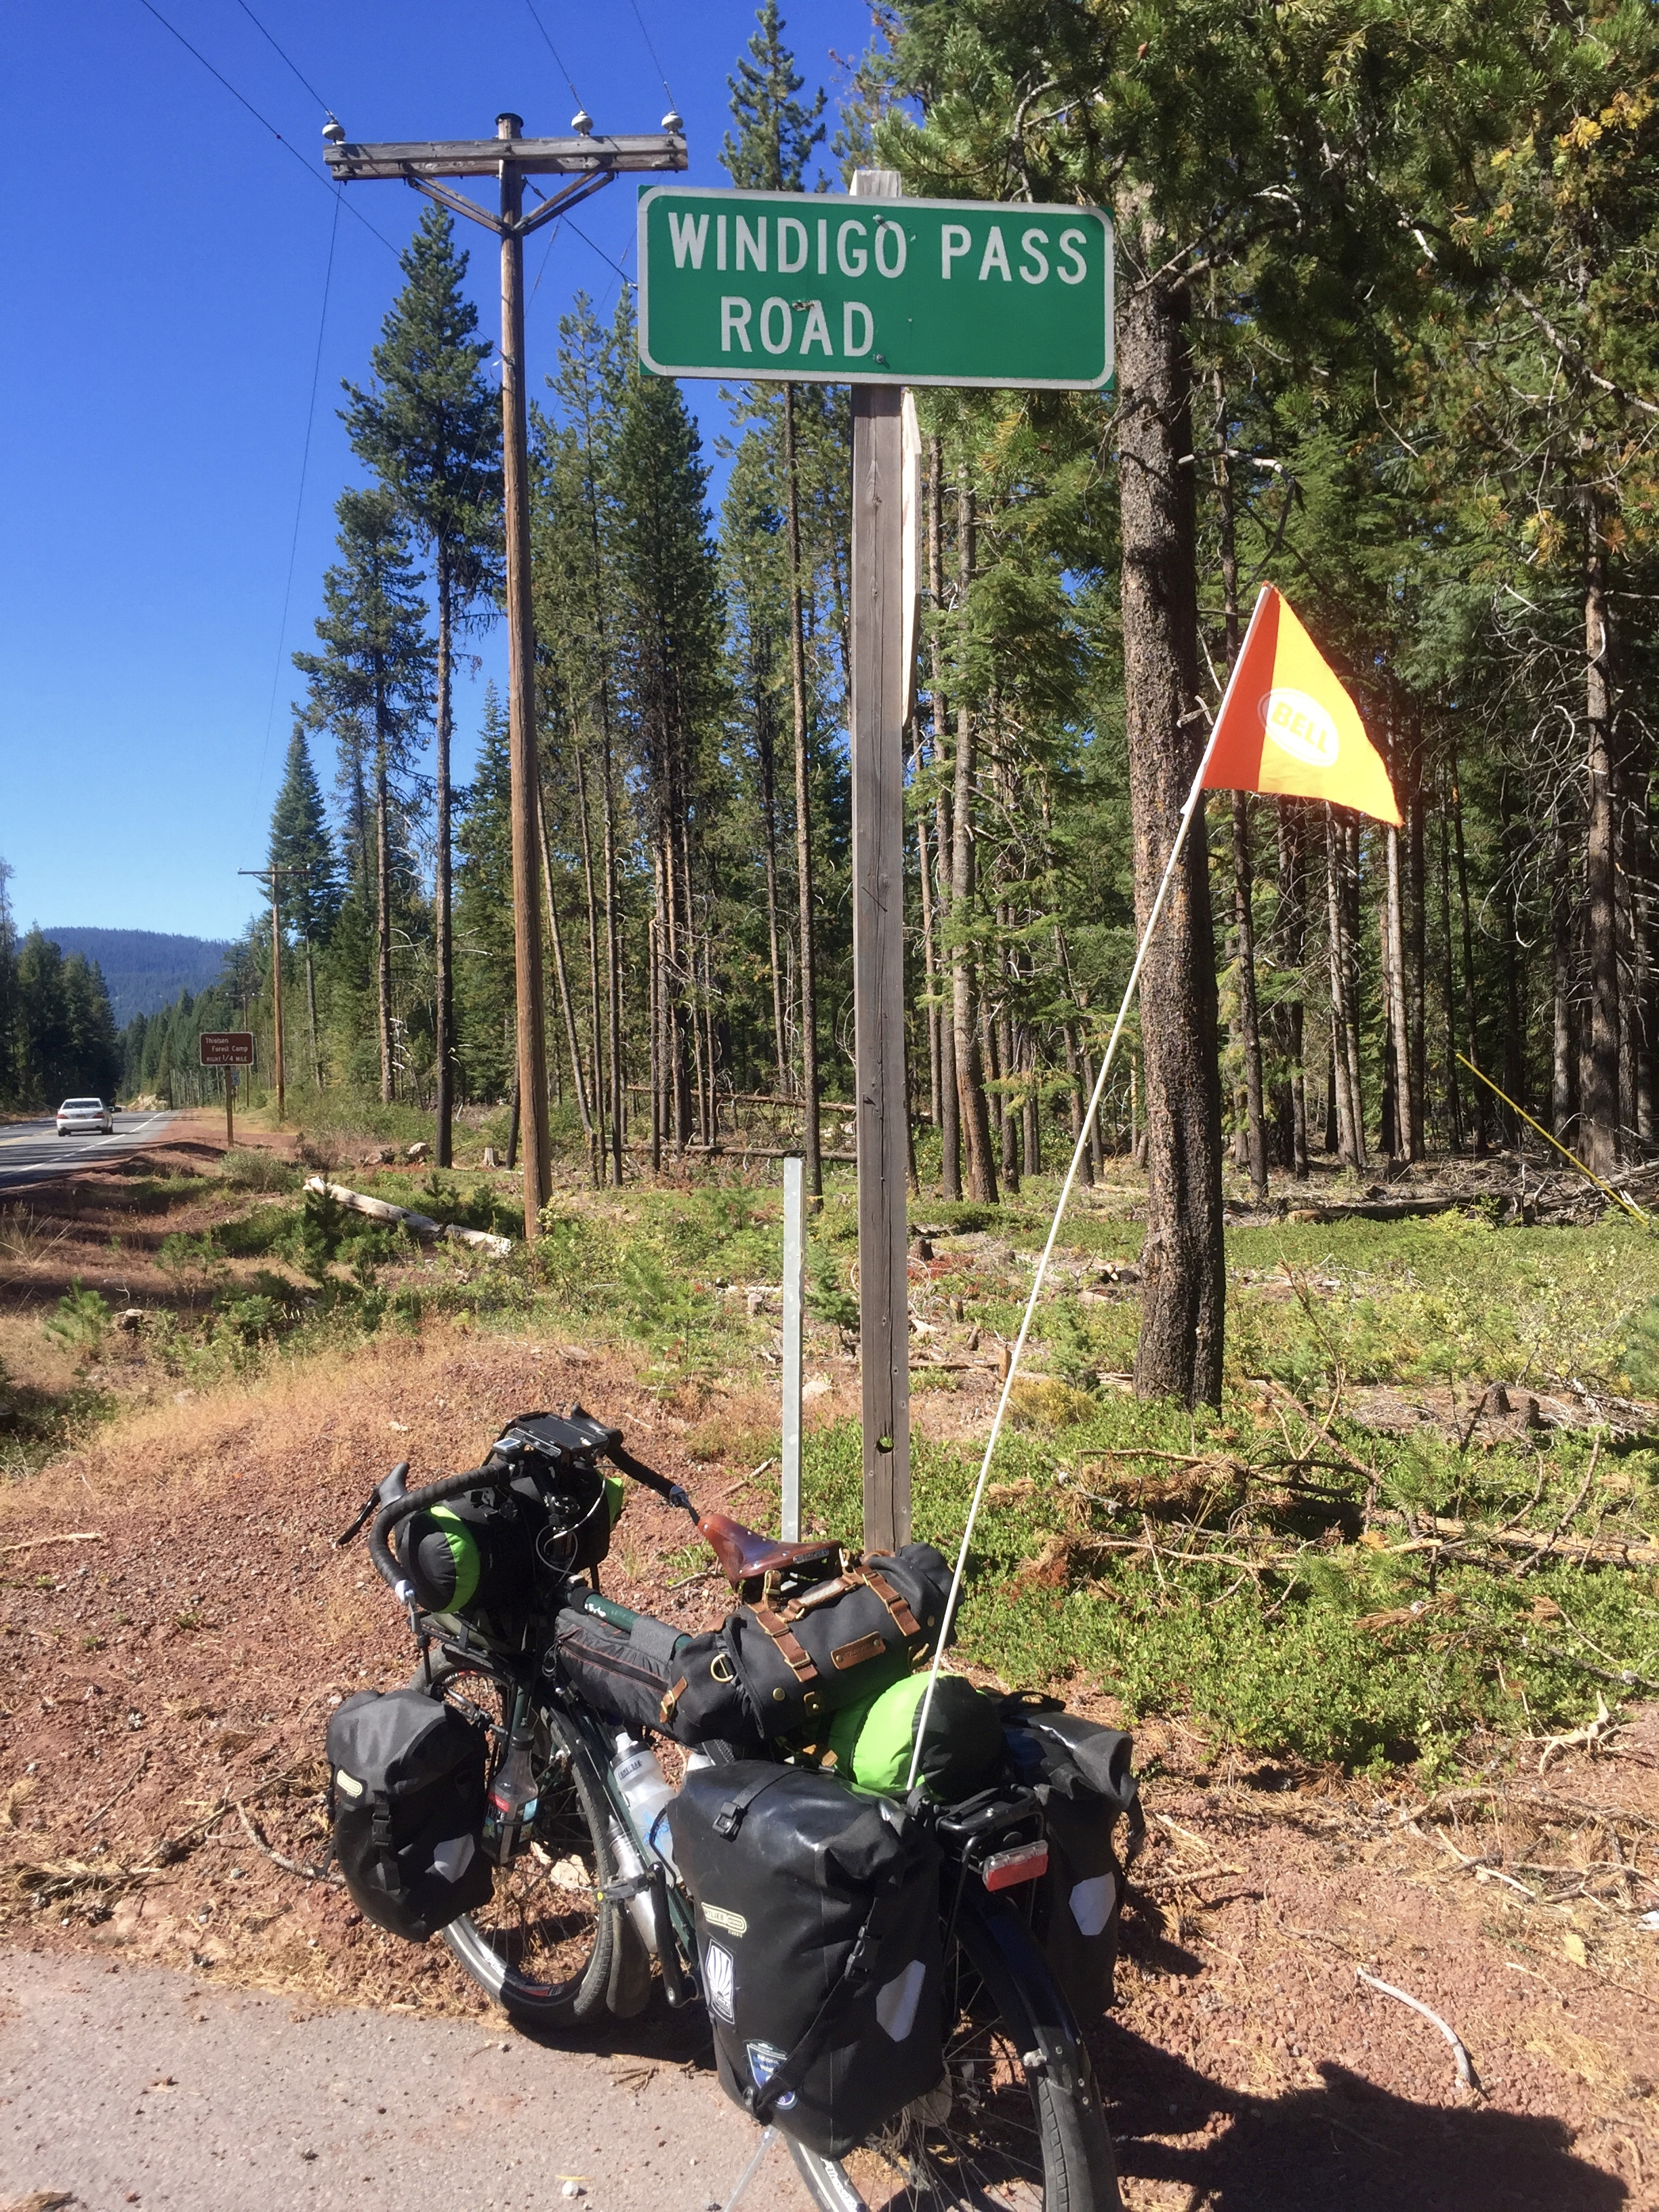 Windigo Pass Road